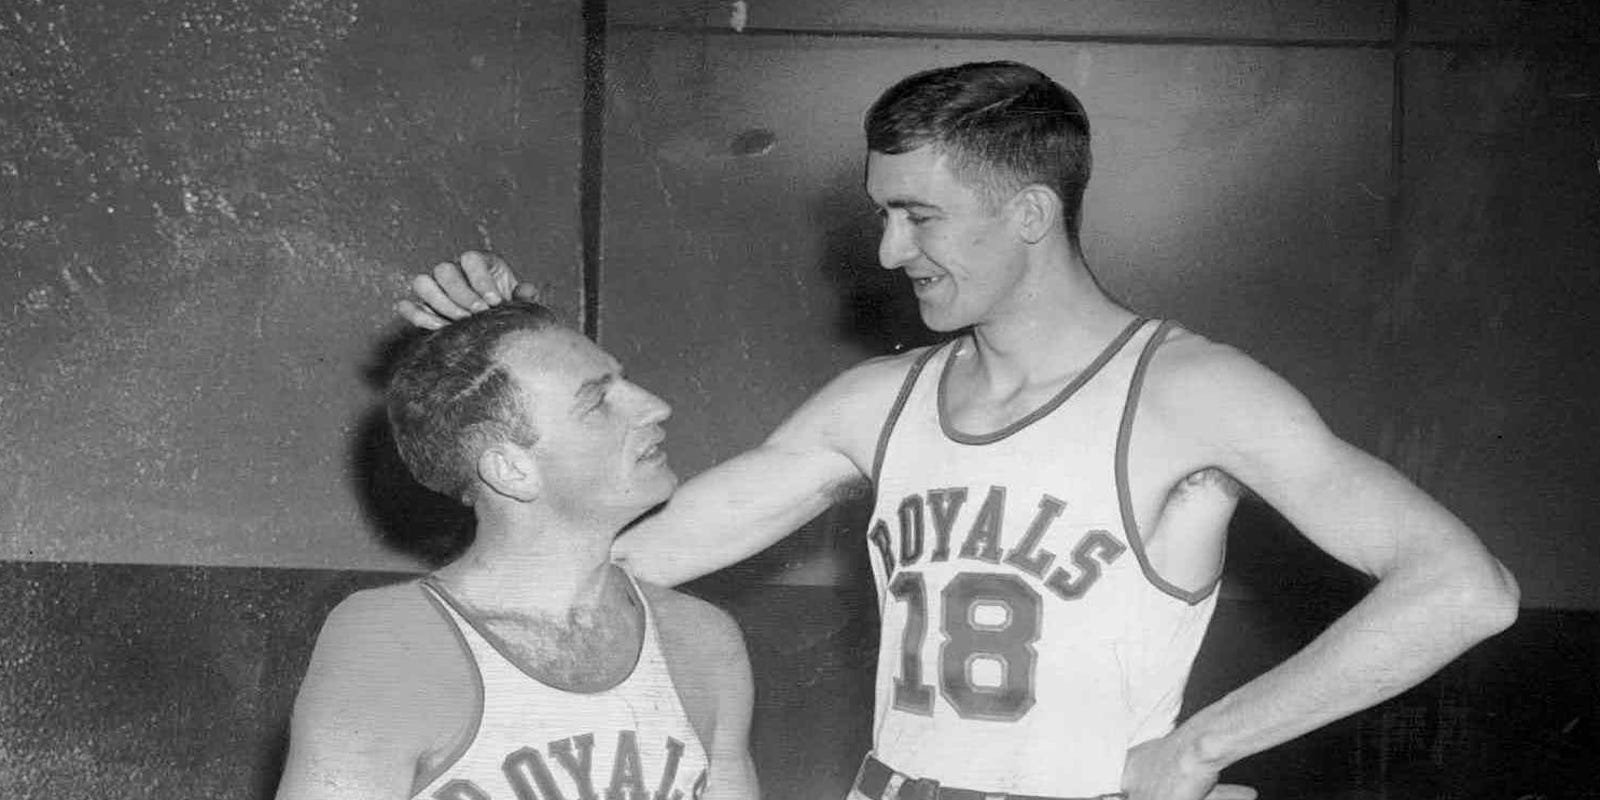 Whatever Happened To ... The Rochester Royals?